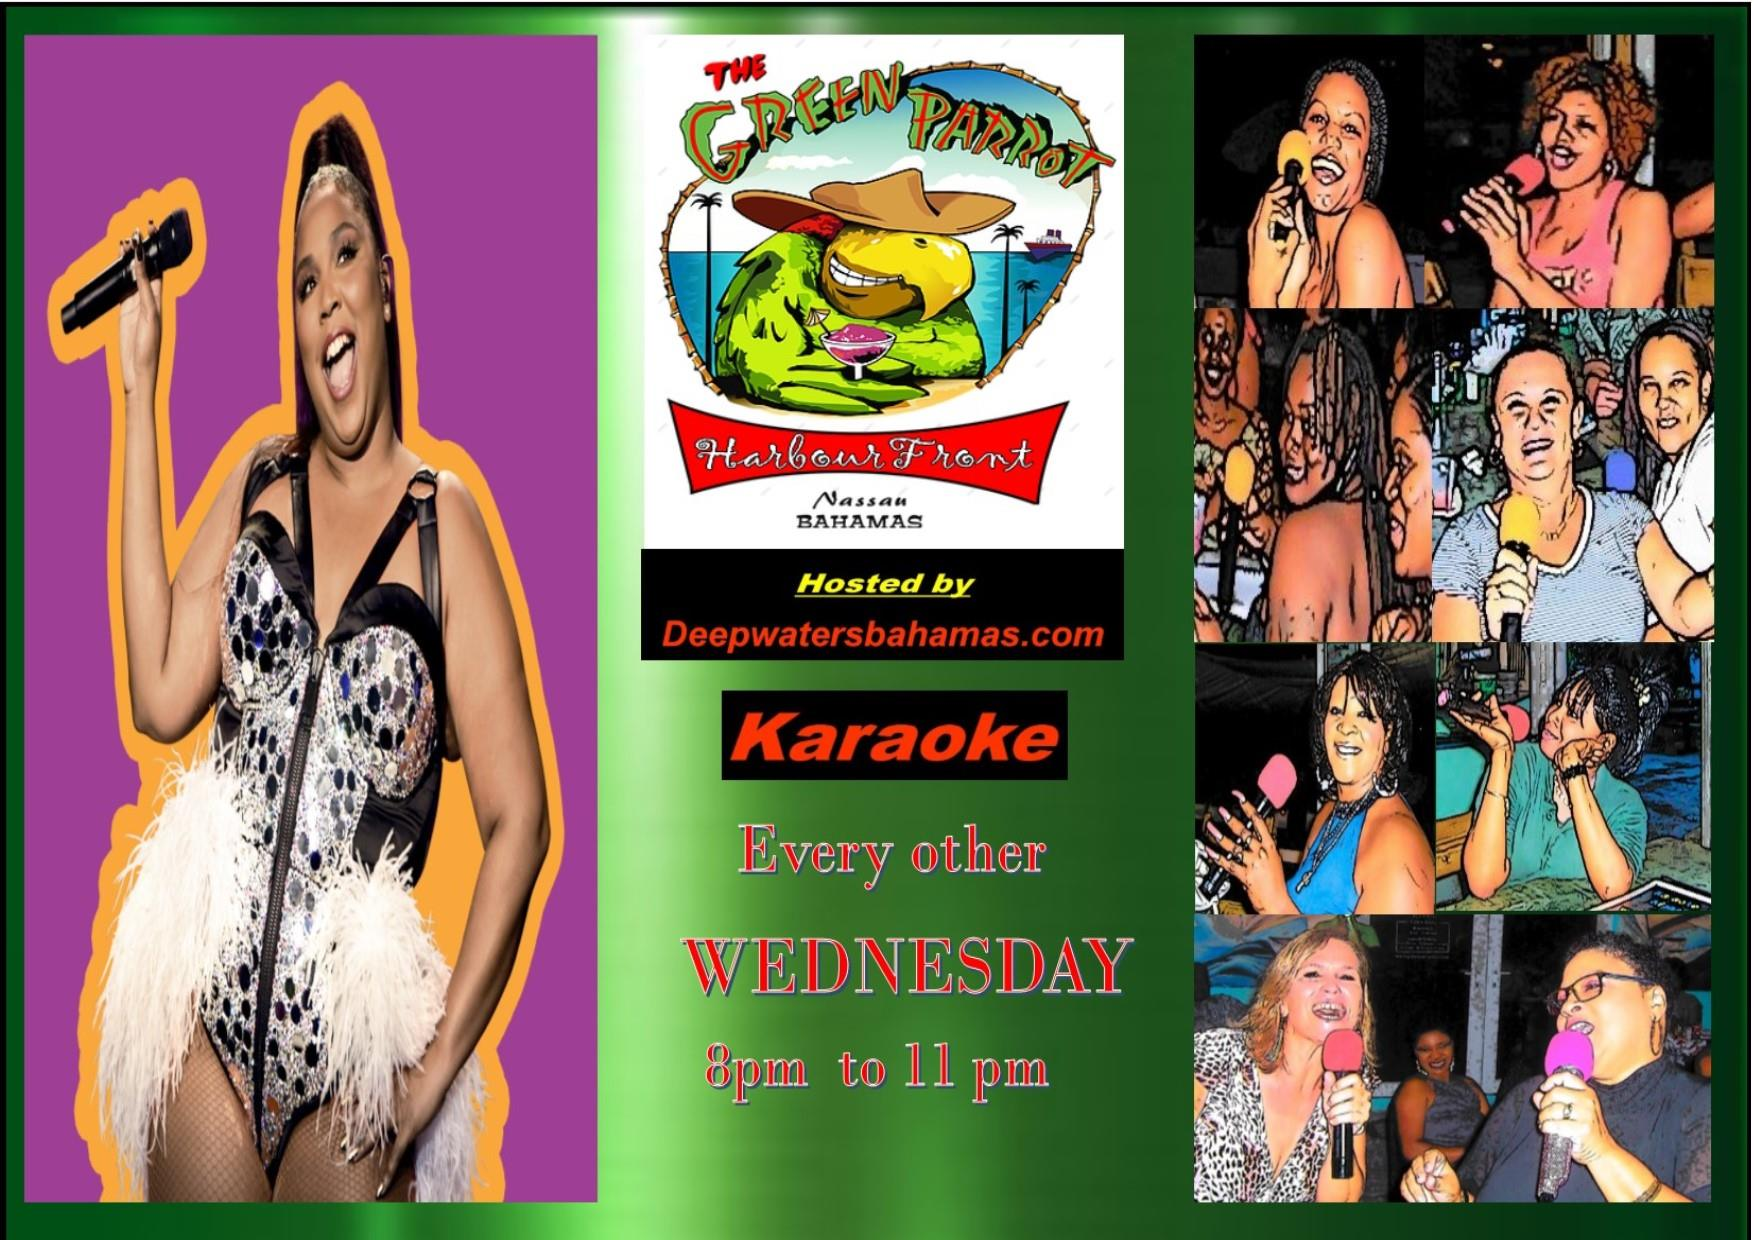 Green Parrot Harbour Front Wednesday Karaoke Night